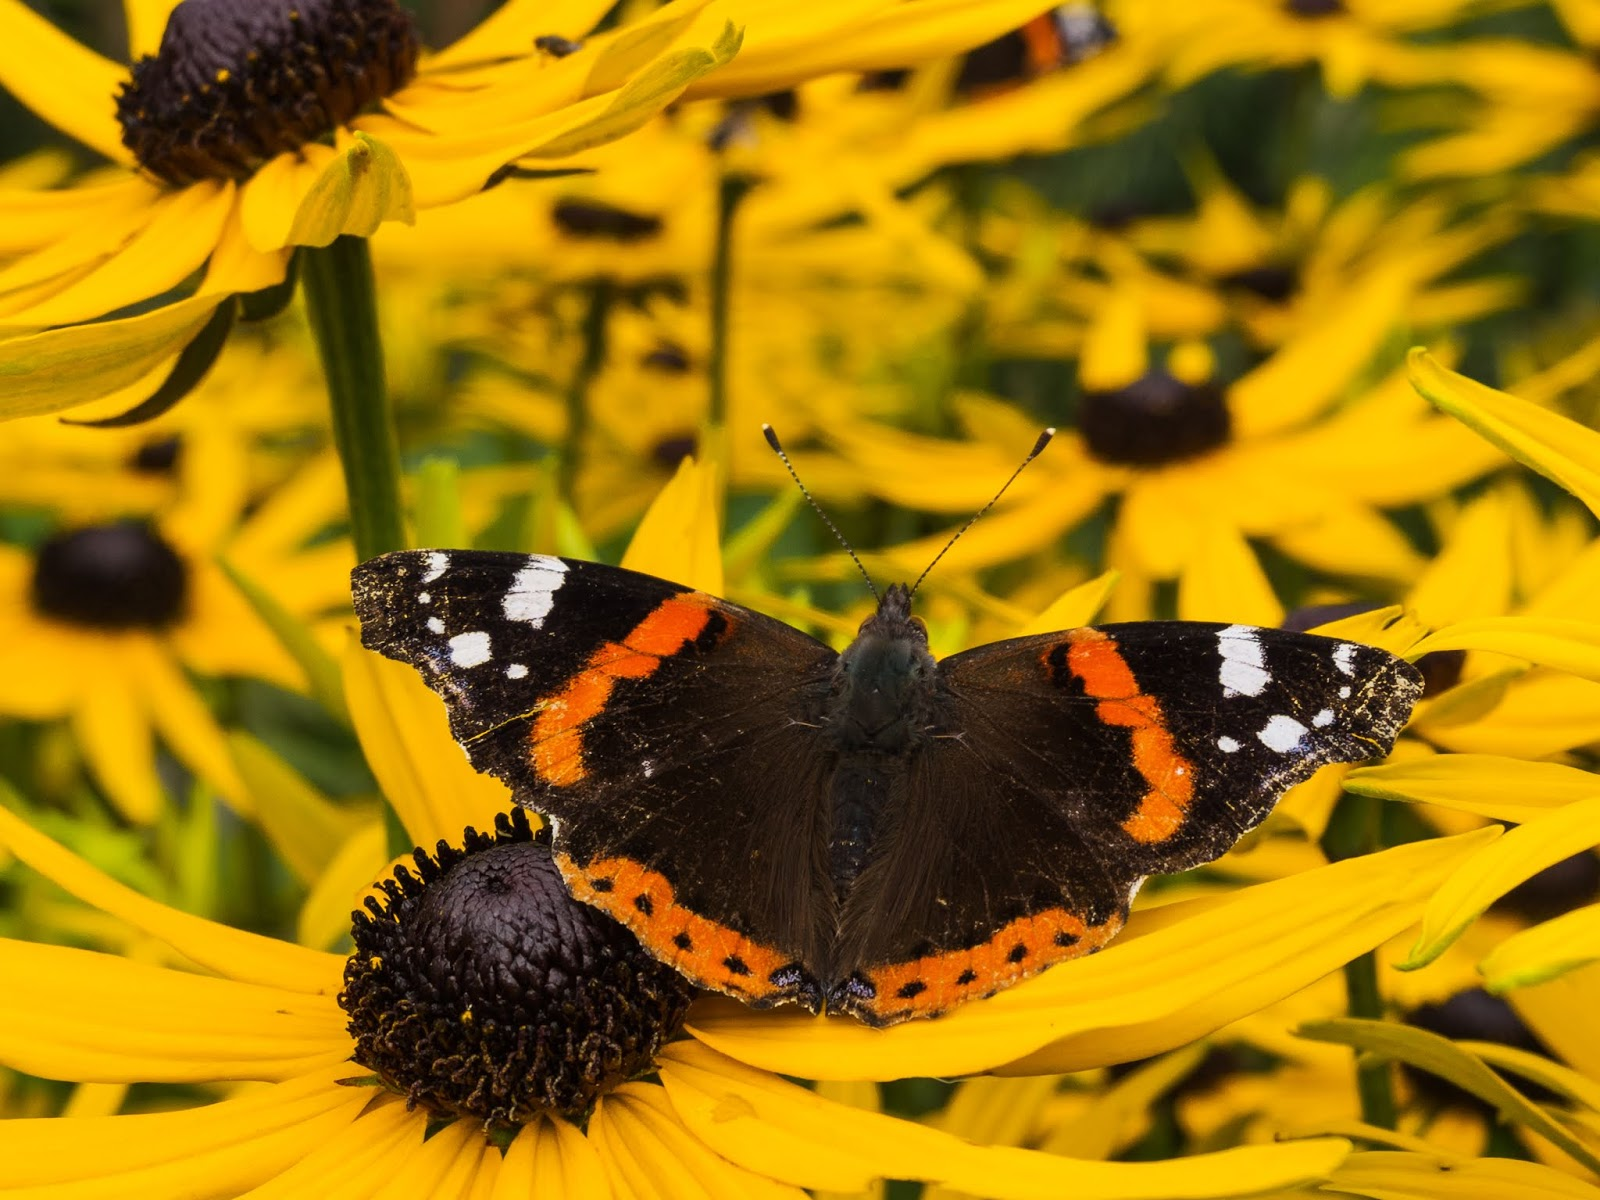 A Red Admiral butterfly sitting on yellow Black Eyed Susan flowers.